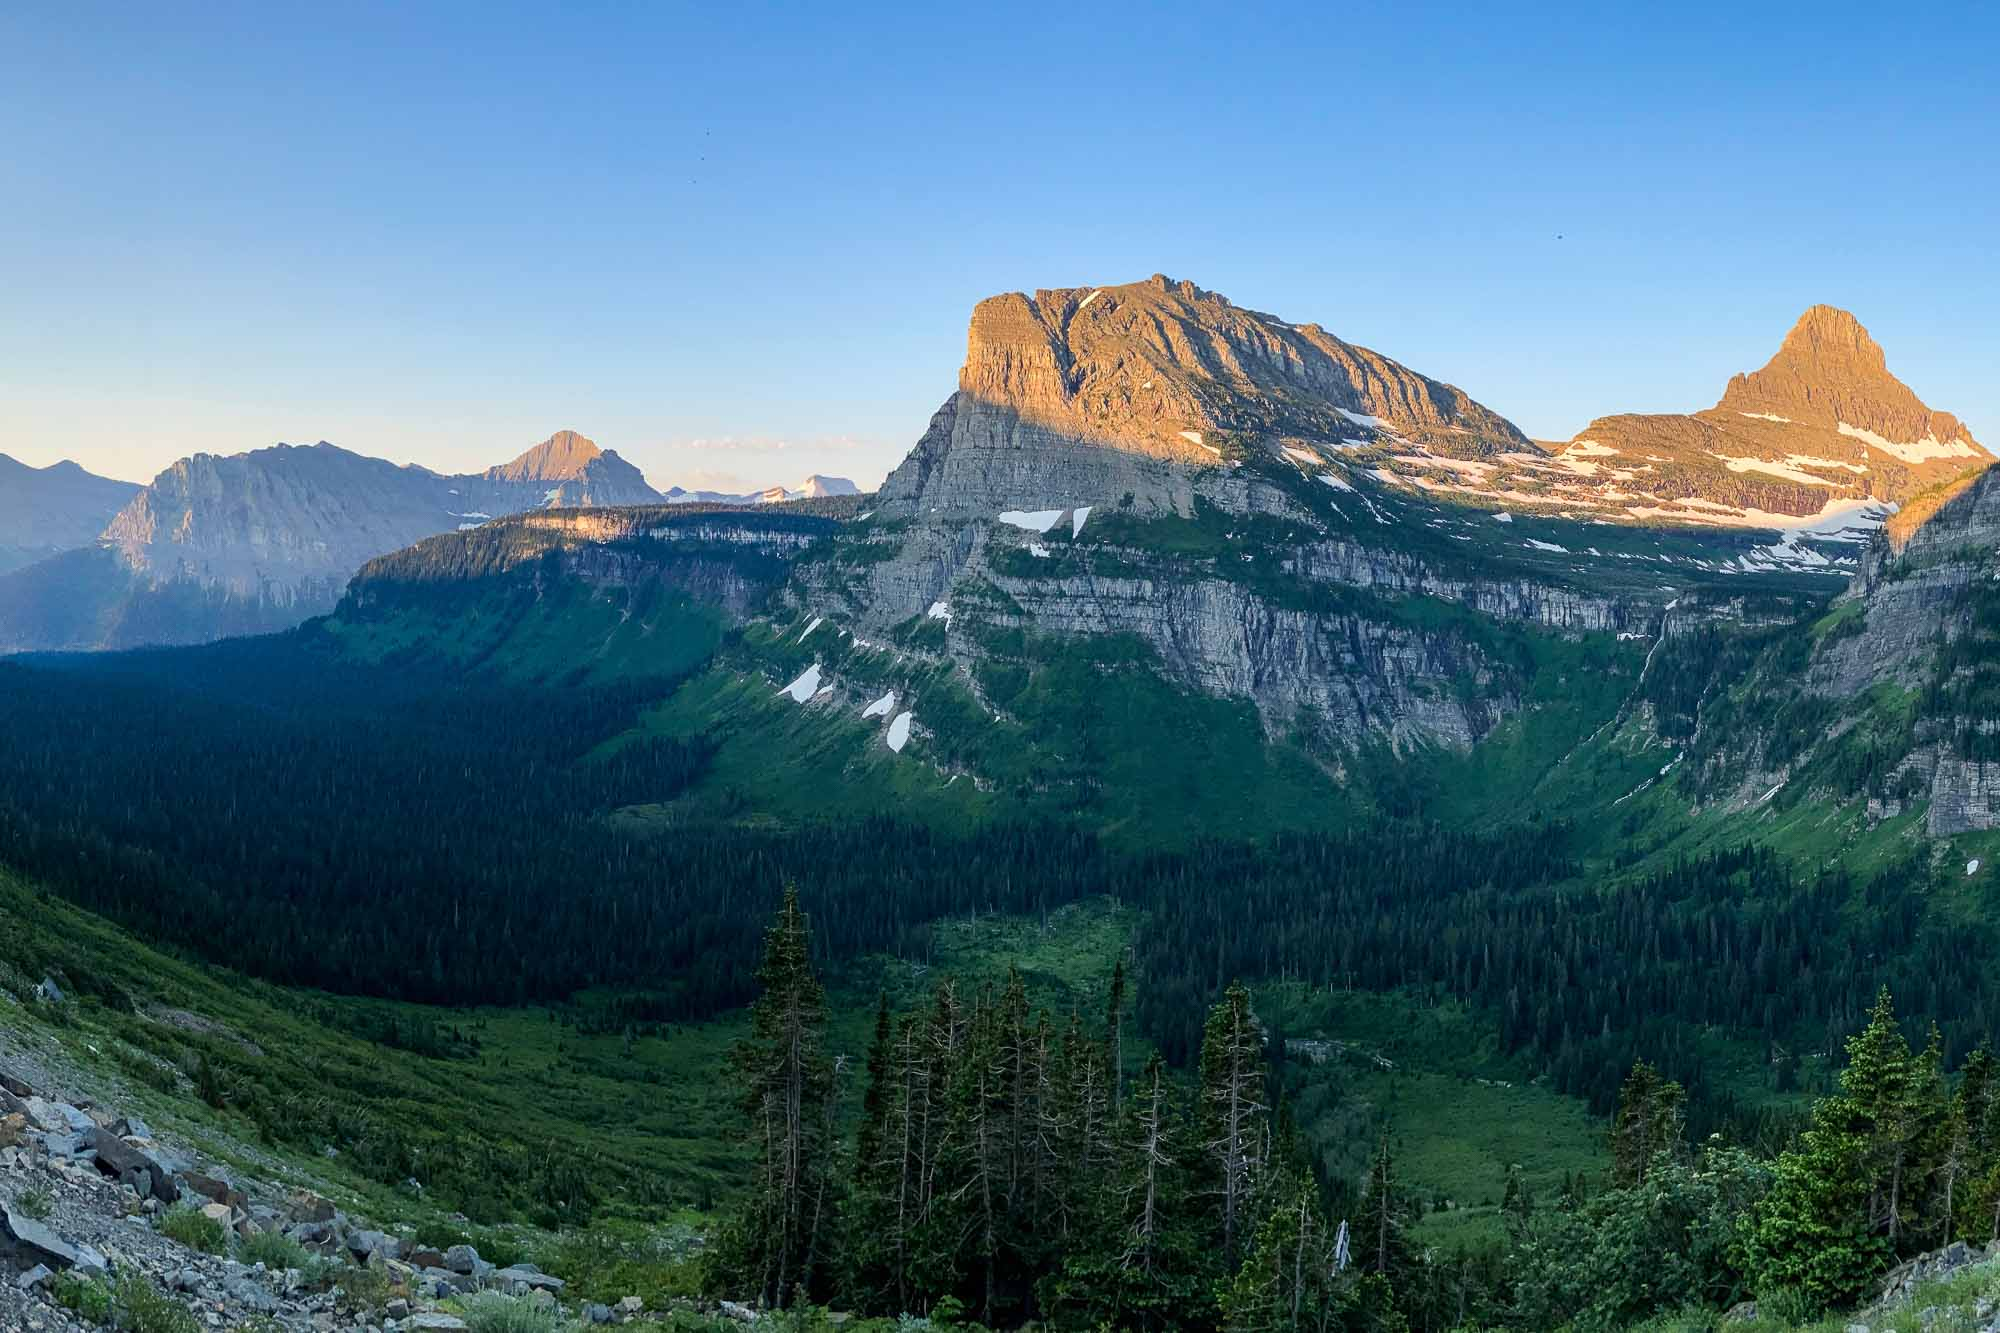 Going-to-the-Sun Road viewpoint in Glacier National Park, Montana, UNESCO World Heritage Site